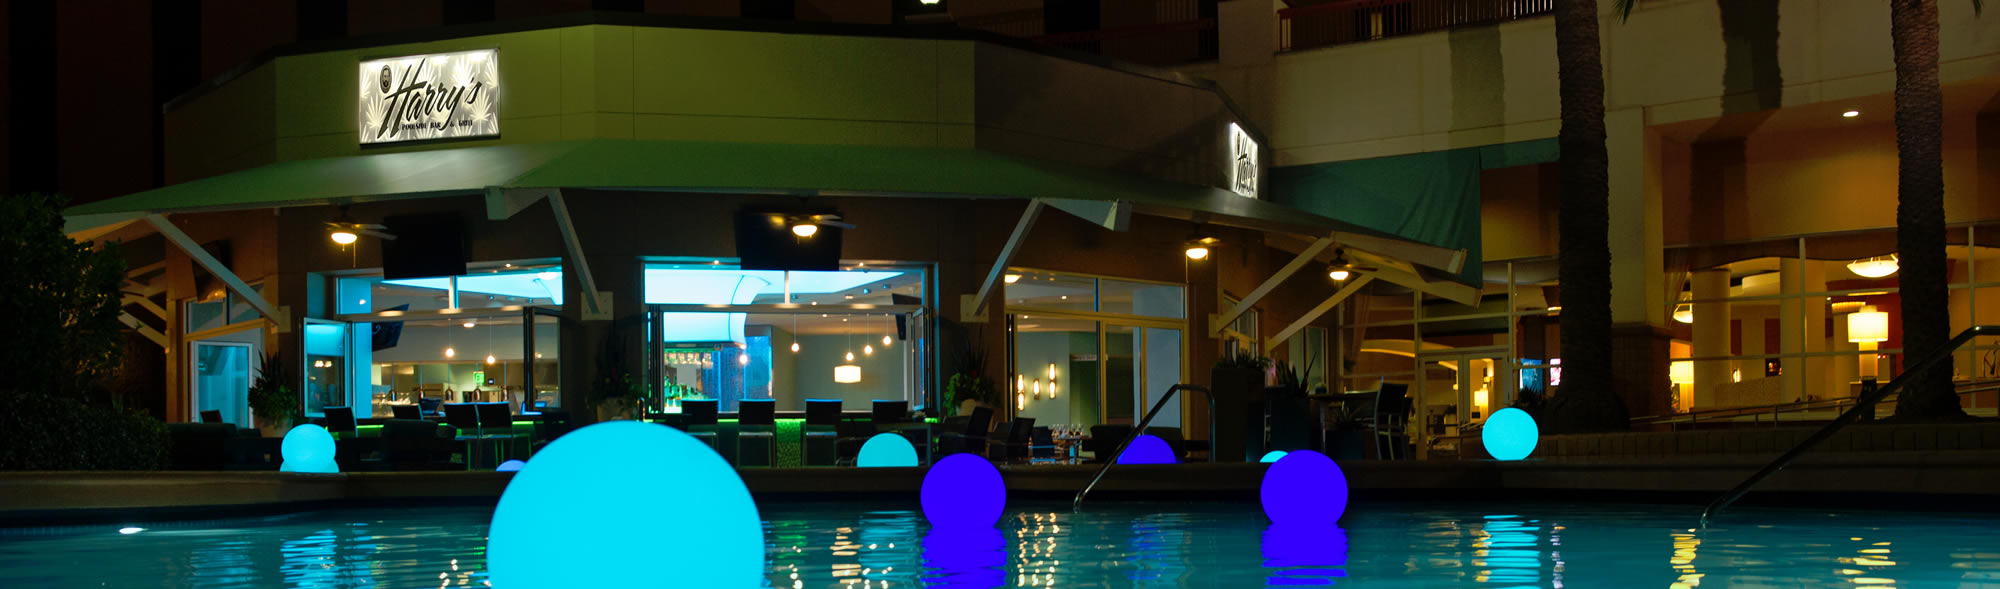 resort pool at night with lighted balls